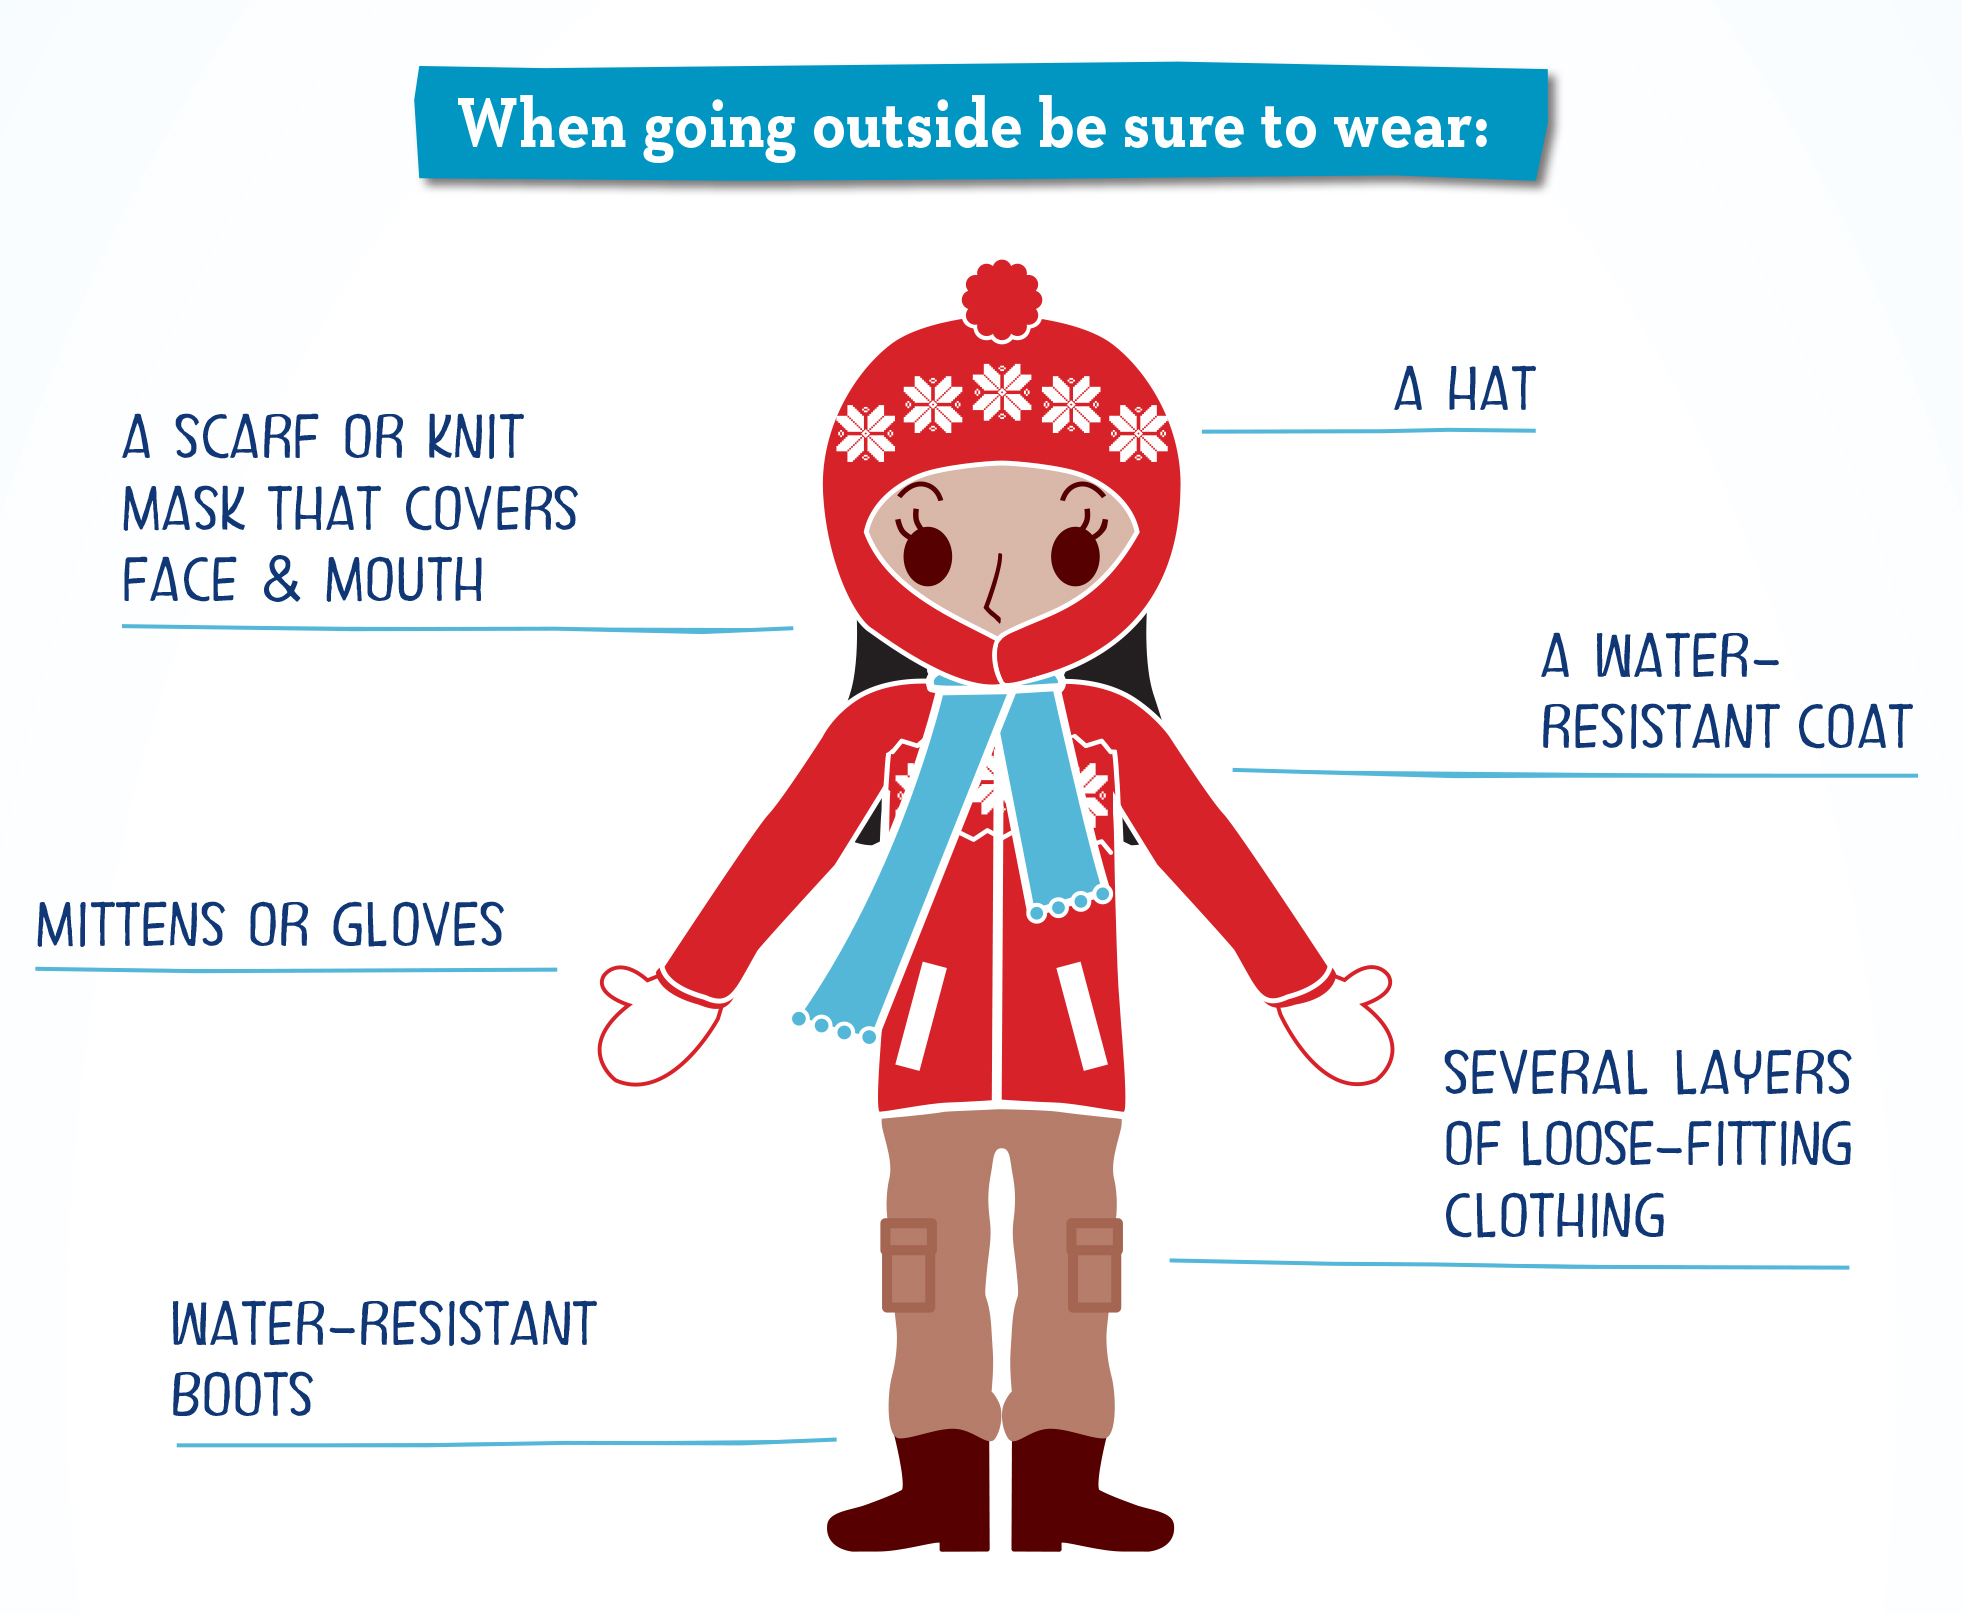 Wear layers and water-resistant clothing; cover extremities